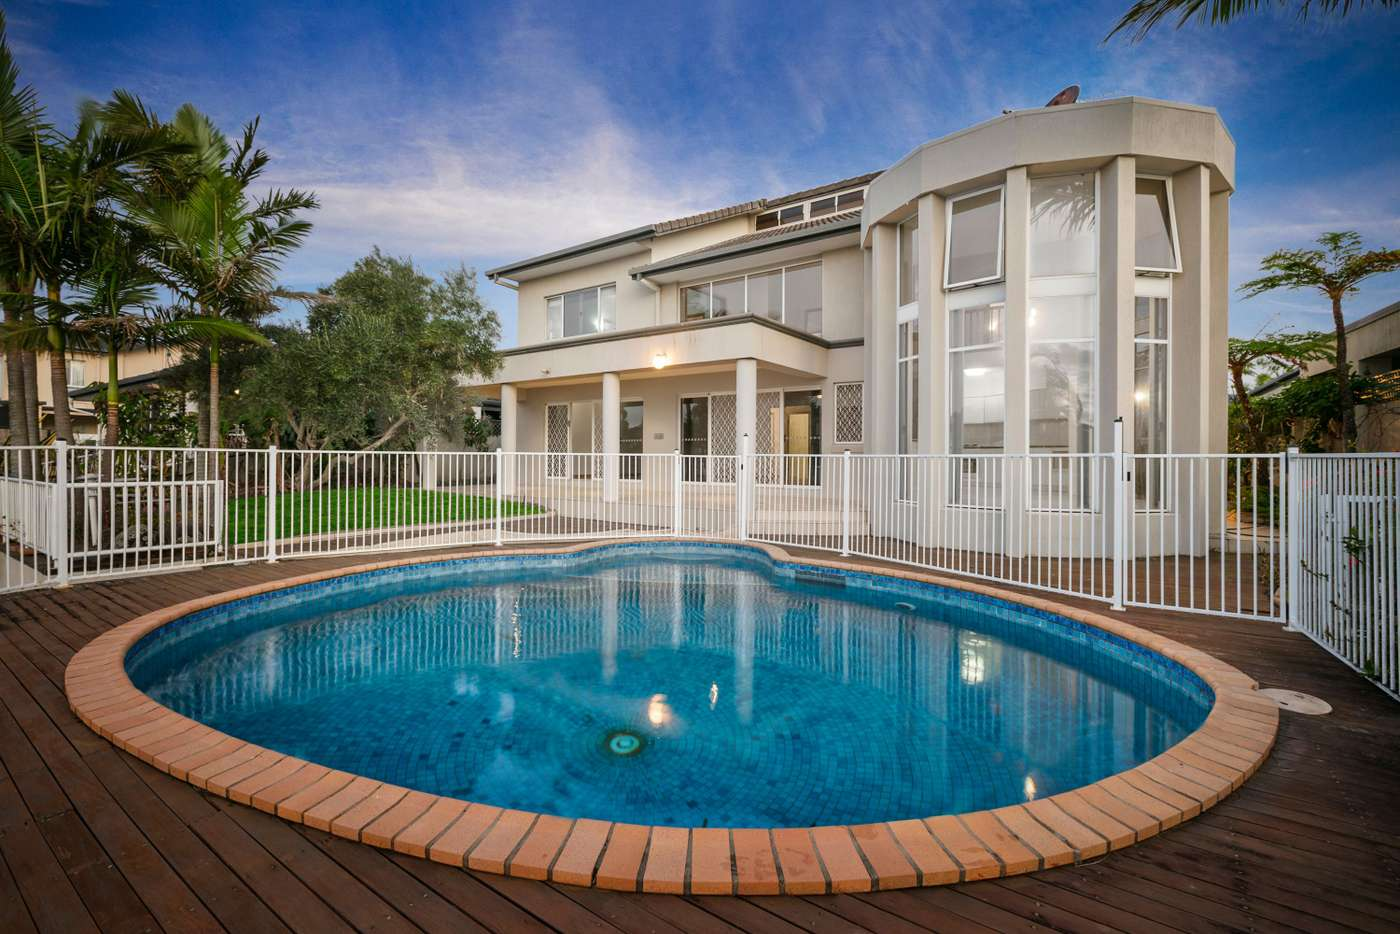 Main view of Homely house listing, 73 Pebble Beach Drive, Runaway Bay QLD 4216